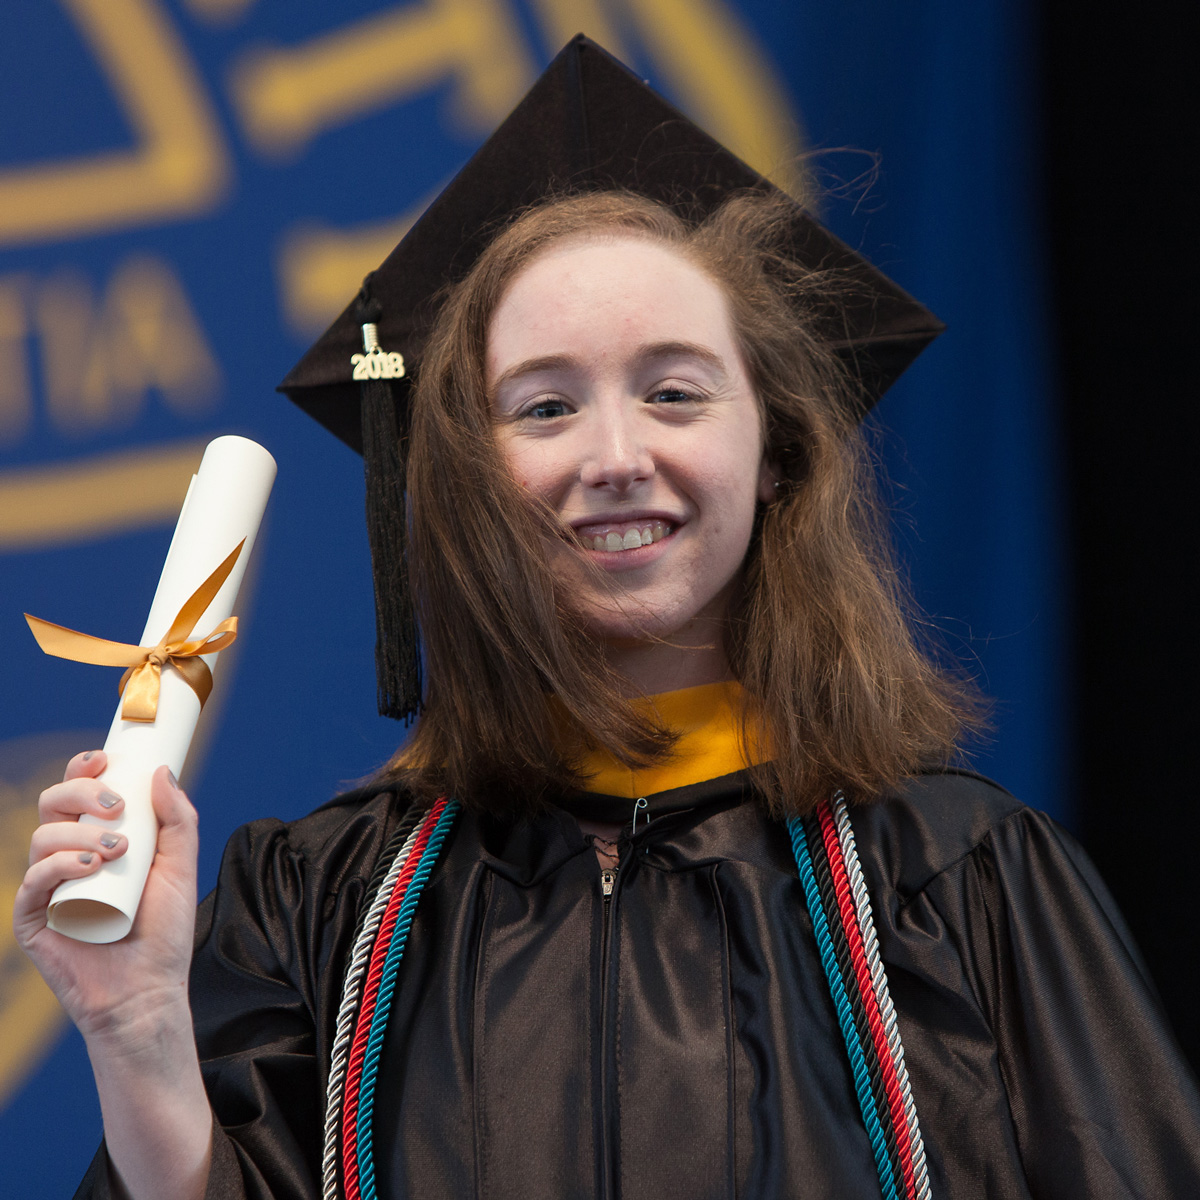 Ashley holding up her scroll while walking across the stage during Commencement.